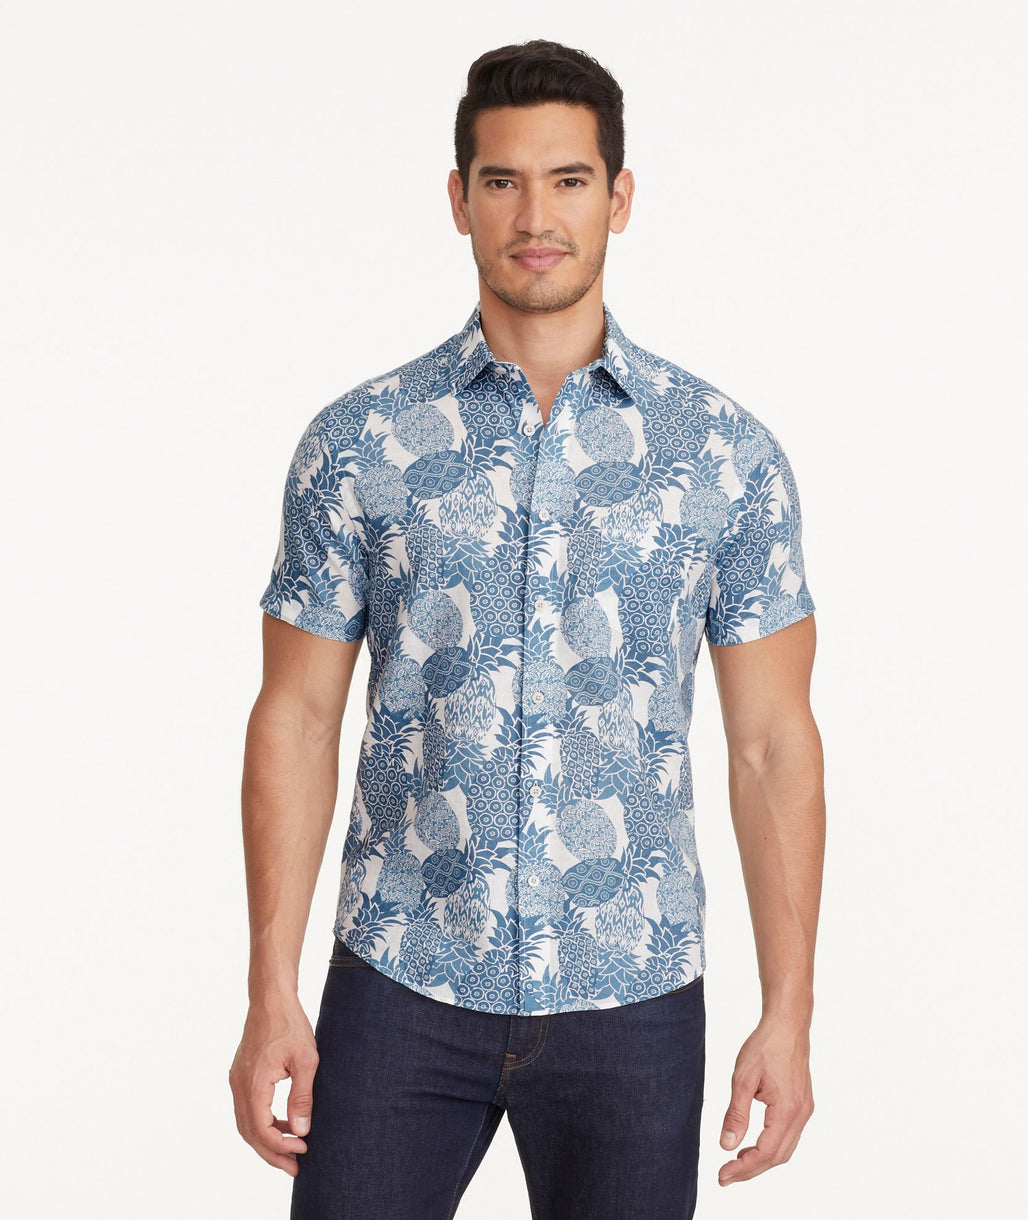 A model wearing a Blue Cotton-Linen Short-Sleeve Yoti Shirt